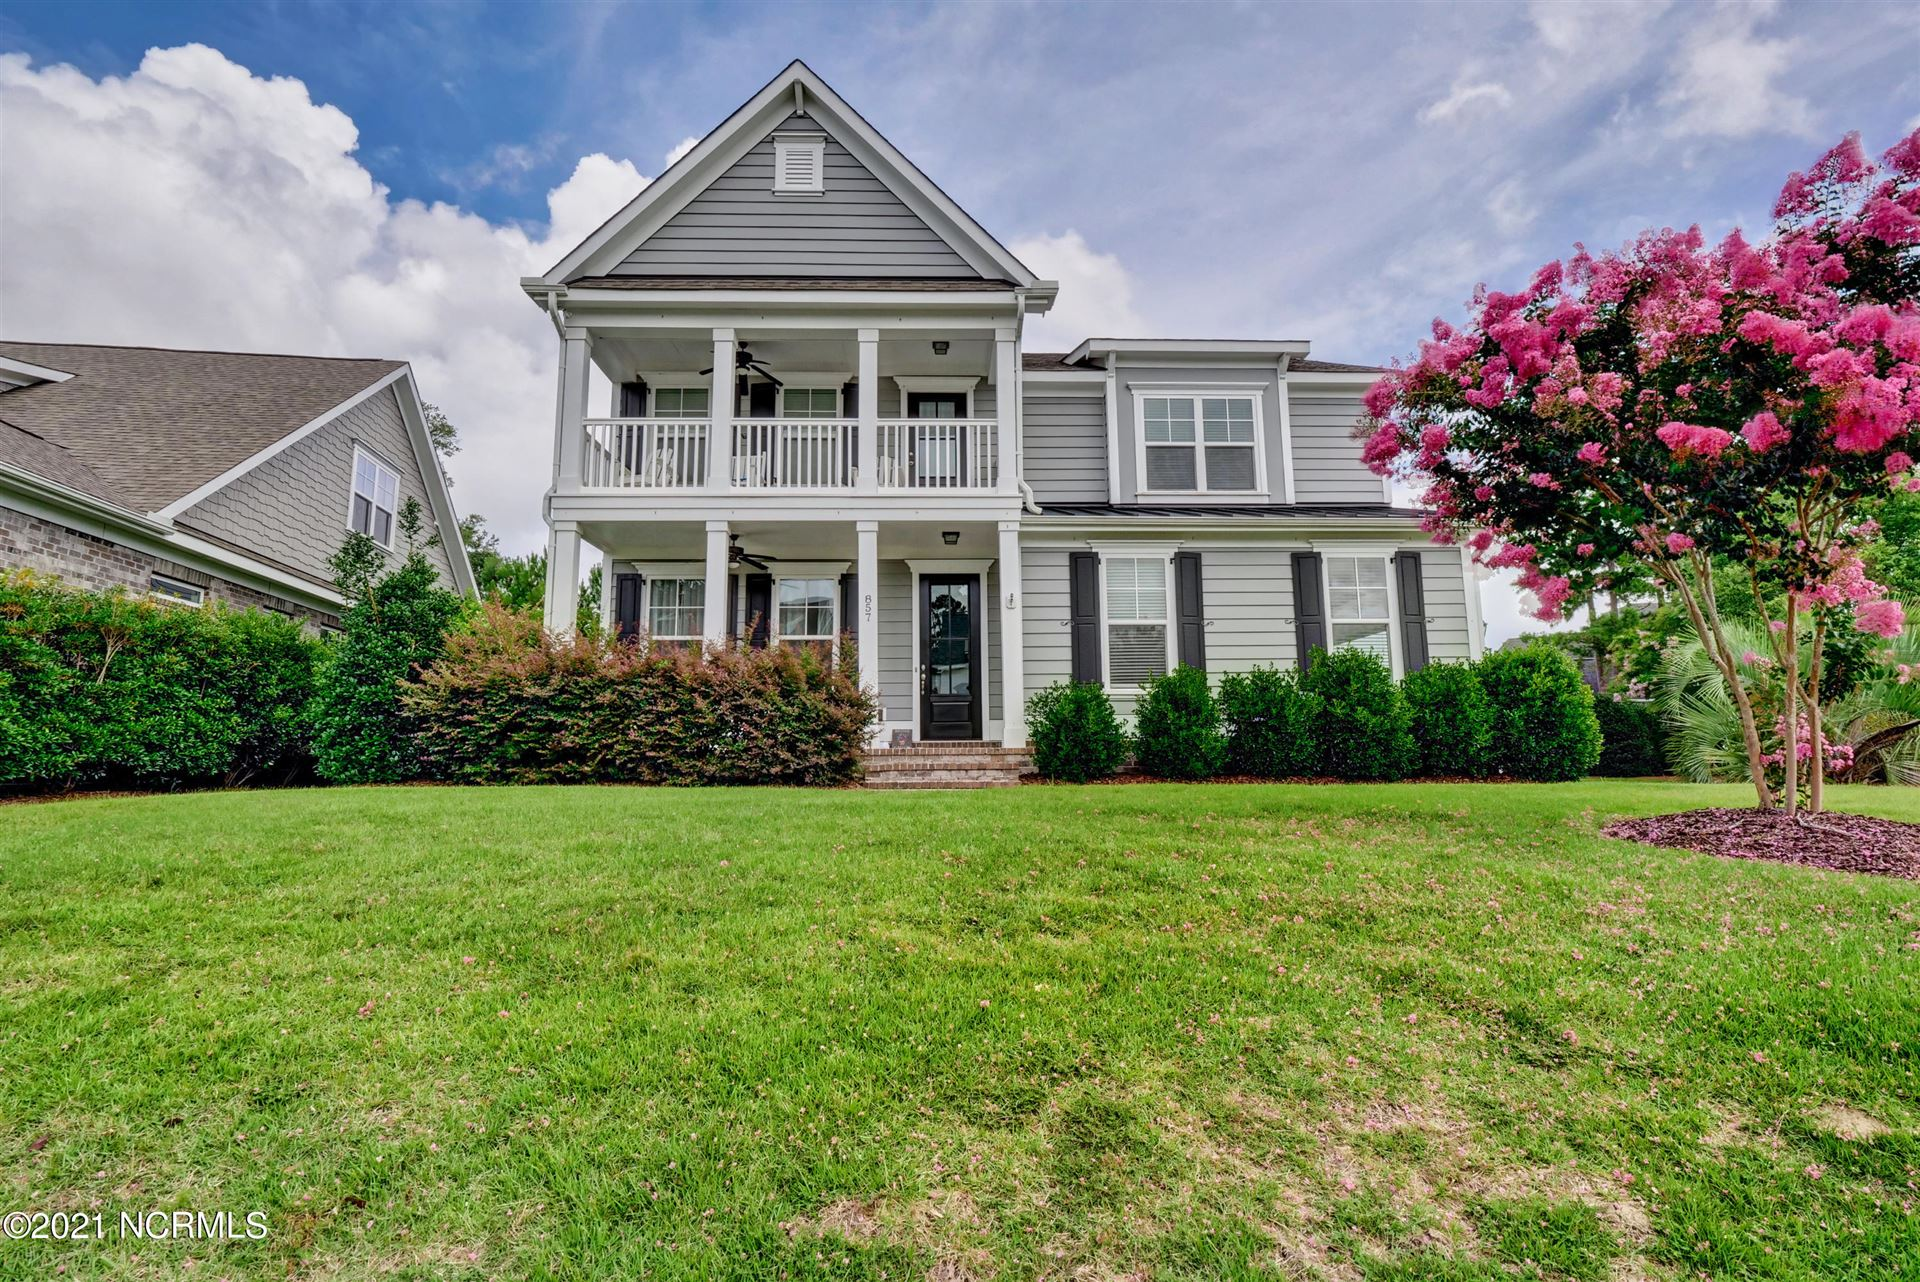 Photo of 857 Bedminister Lane, Wilmington, NC 28405 (MLS # 100280414)